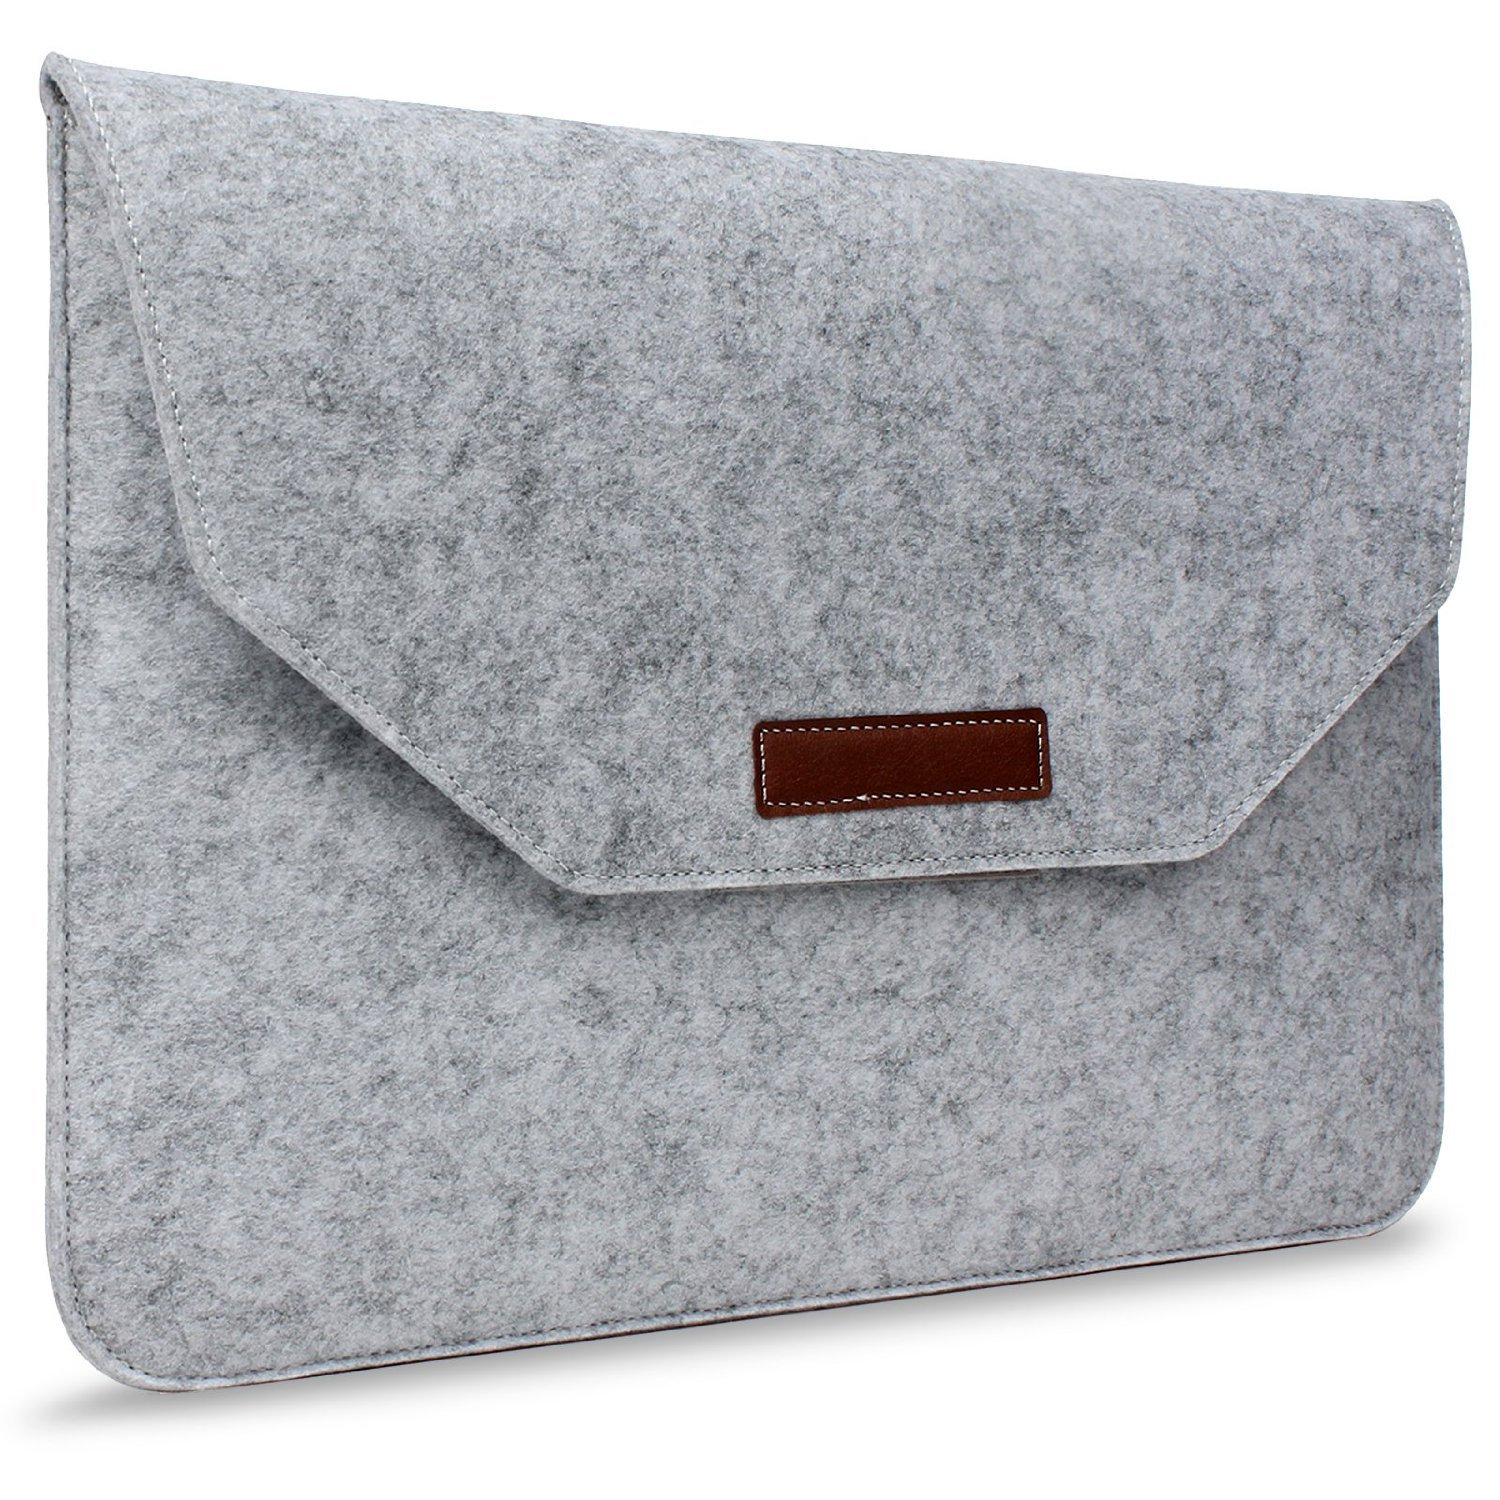 I Love my wool felted laptop sleeve. It's beautiful and so light weight!